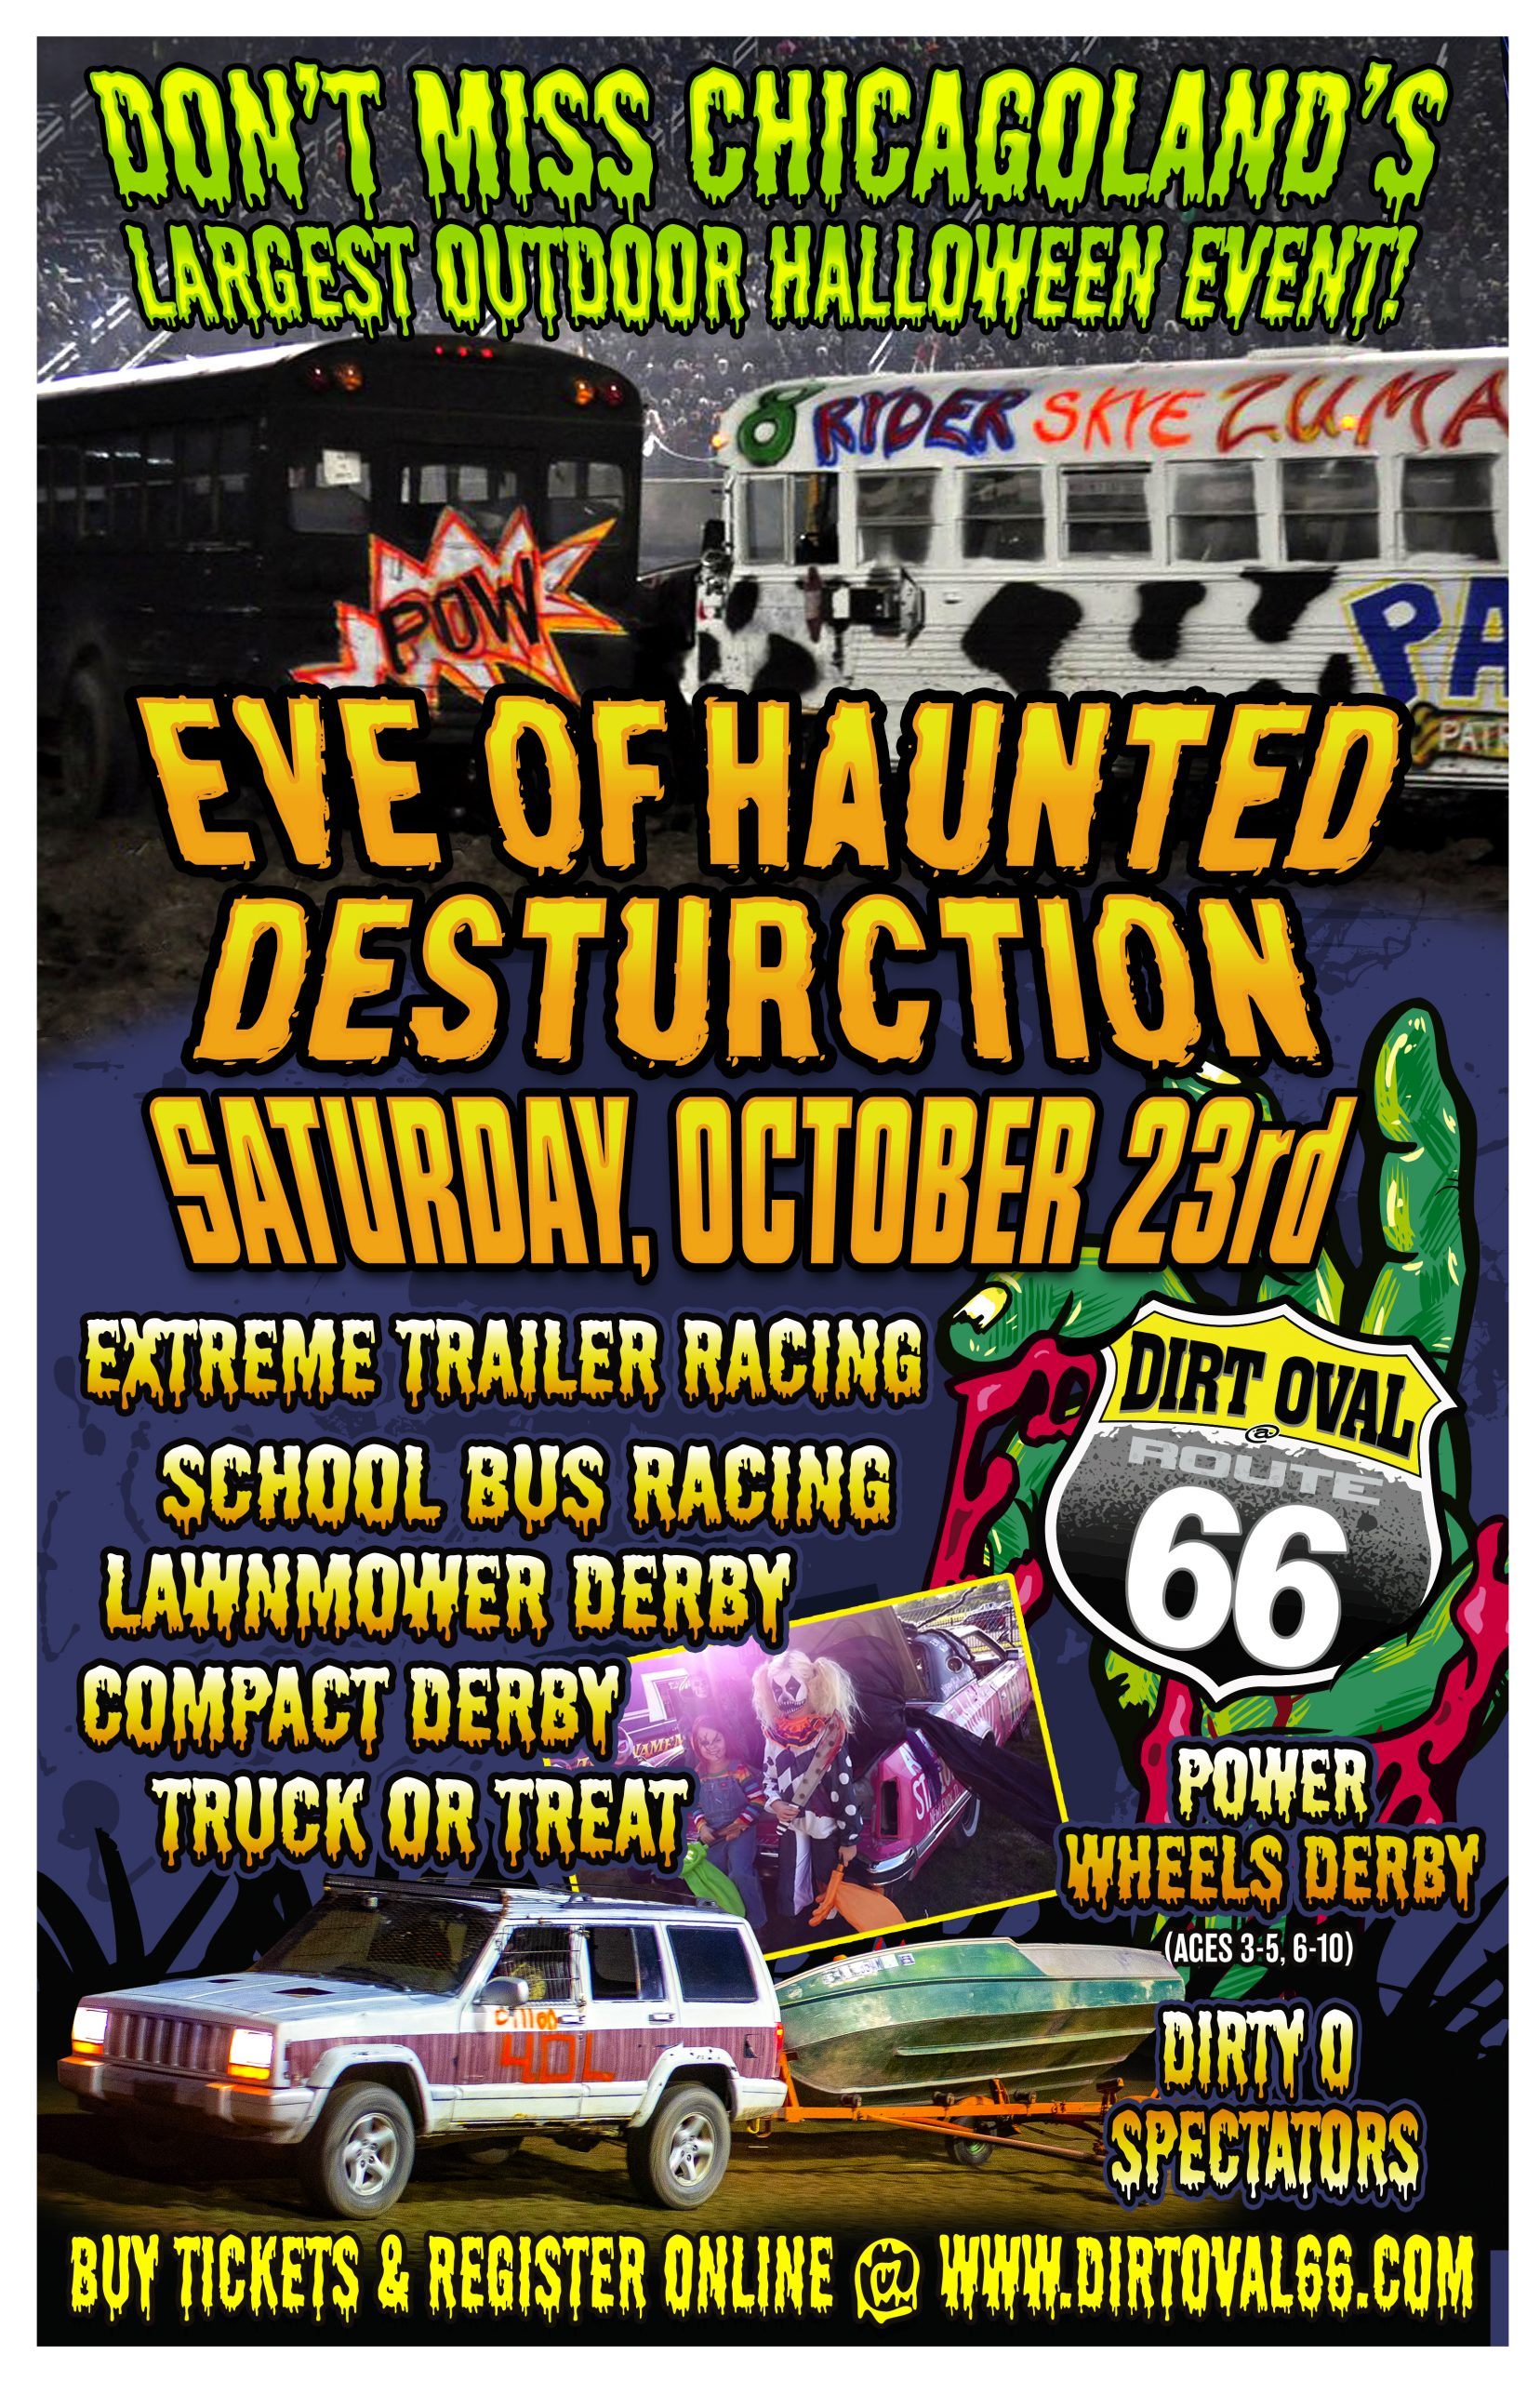 Eve Of Haunted Destruction, Trunk or Treat, School Bus Racing, Power Wheels, Compact Derby, Full Size Derby, Dirty O Spectators, Lawn Mower Racing, Costume Contests & Fireworks.